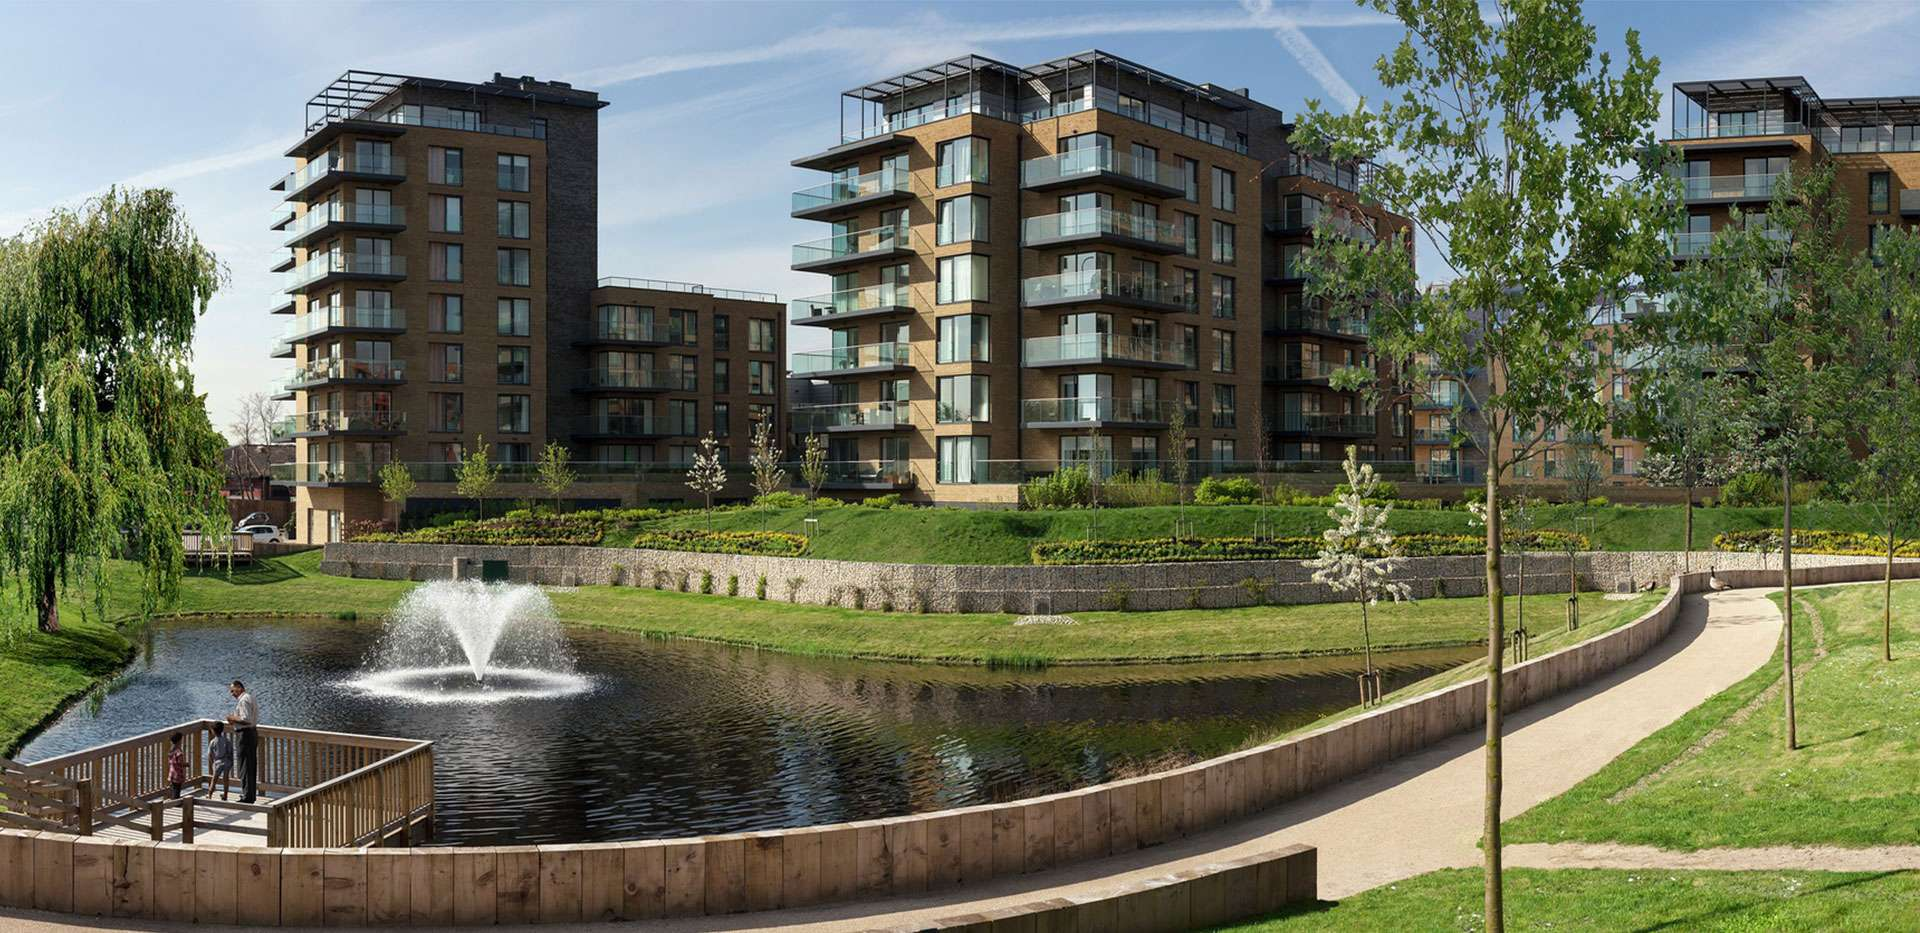 Kidbrooke Village - Apartment for Sale in London from Dubai | Buy Properties in UK